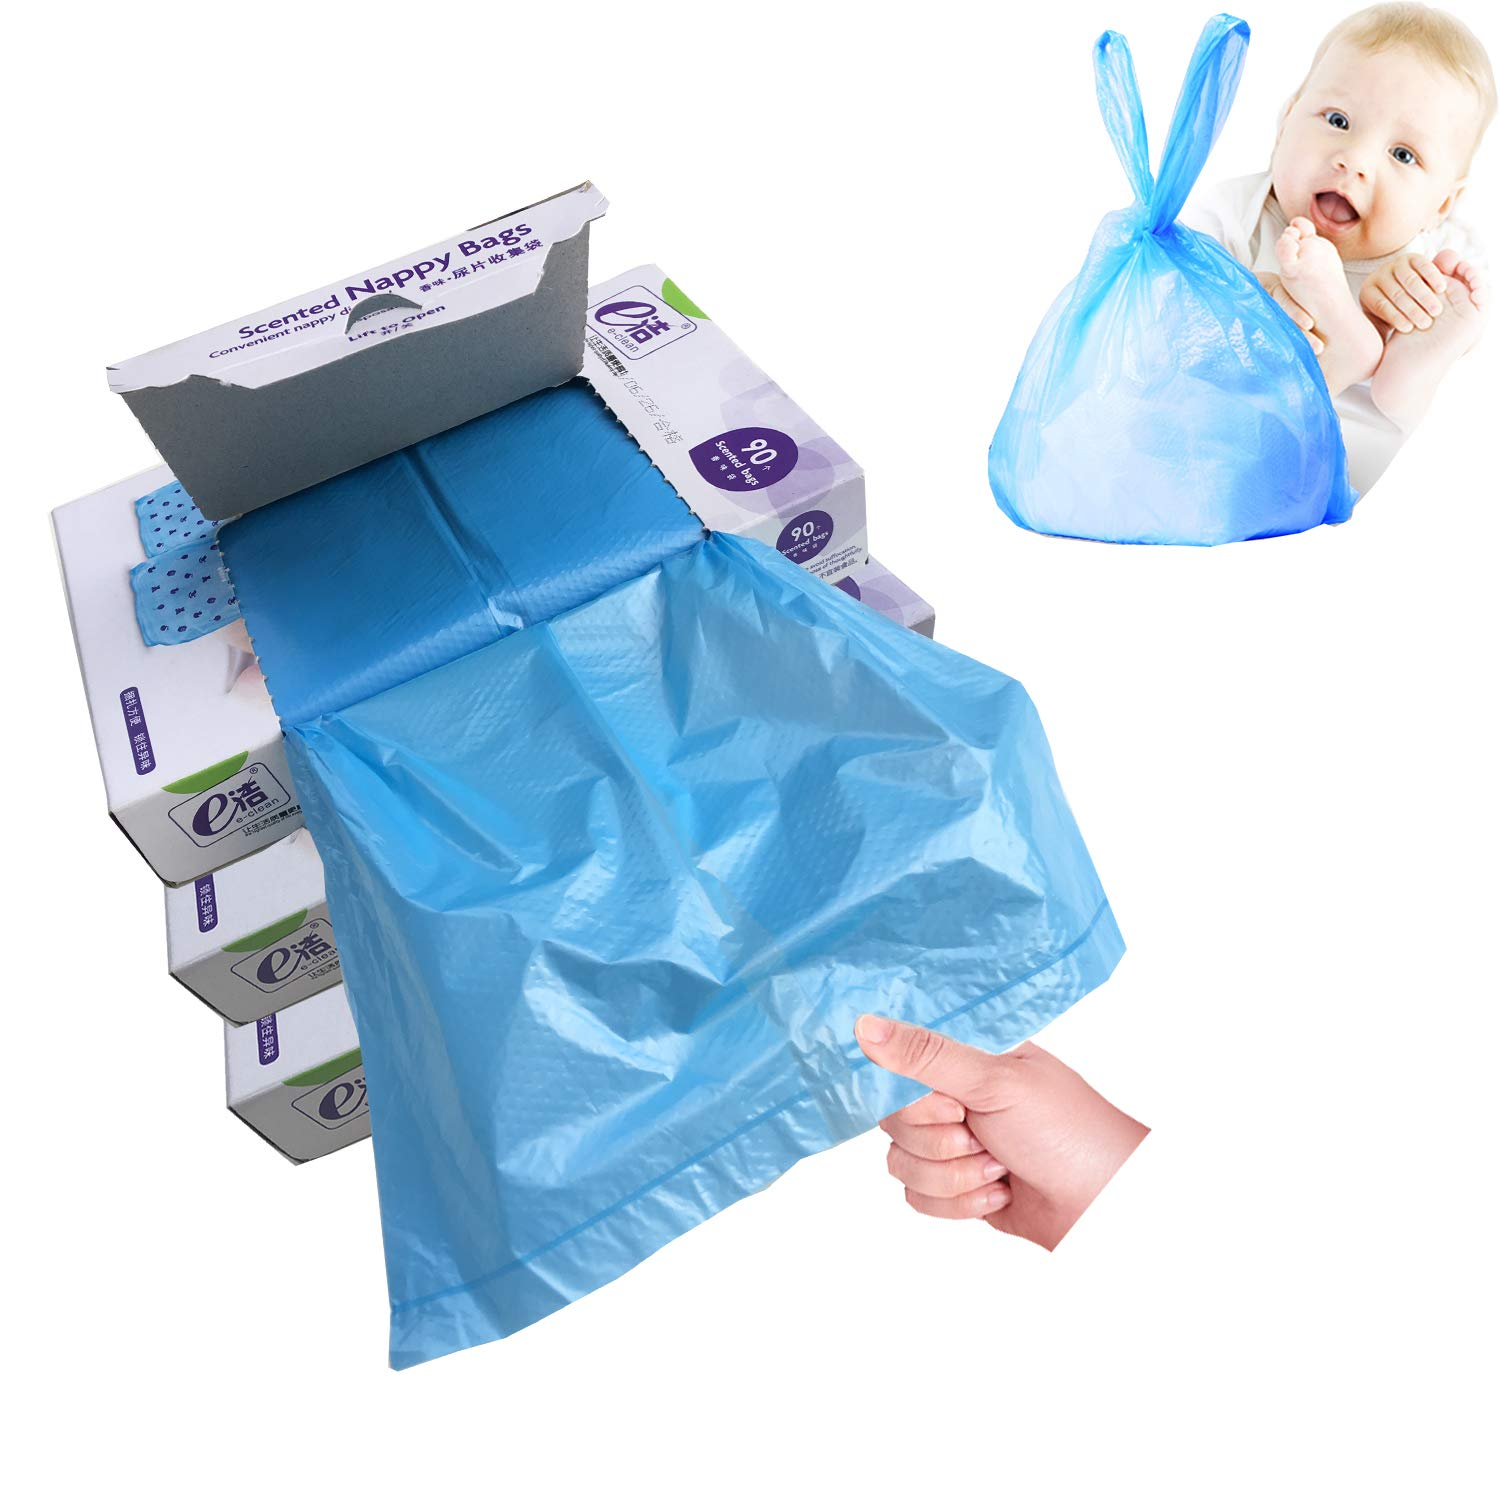 Diaper Disposal Plastic Bags for Baby,On The Go,Fresh Light Baby Powder Scented, Easy Tie Handles, Portable Diaper Pail Refill Bags,Disposable Diaper Sacks Or Poop Pet Waste Bags, 270 Bags, Blue